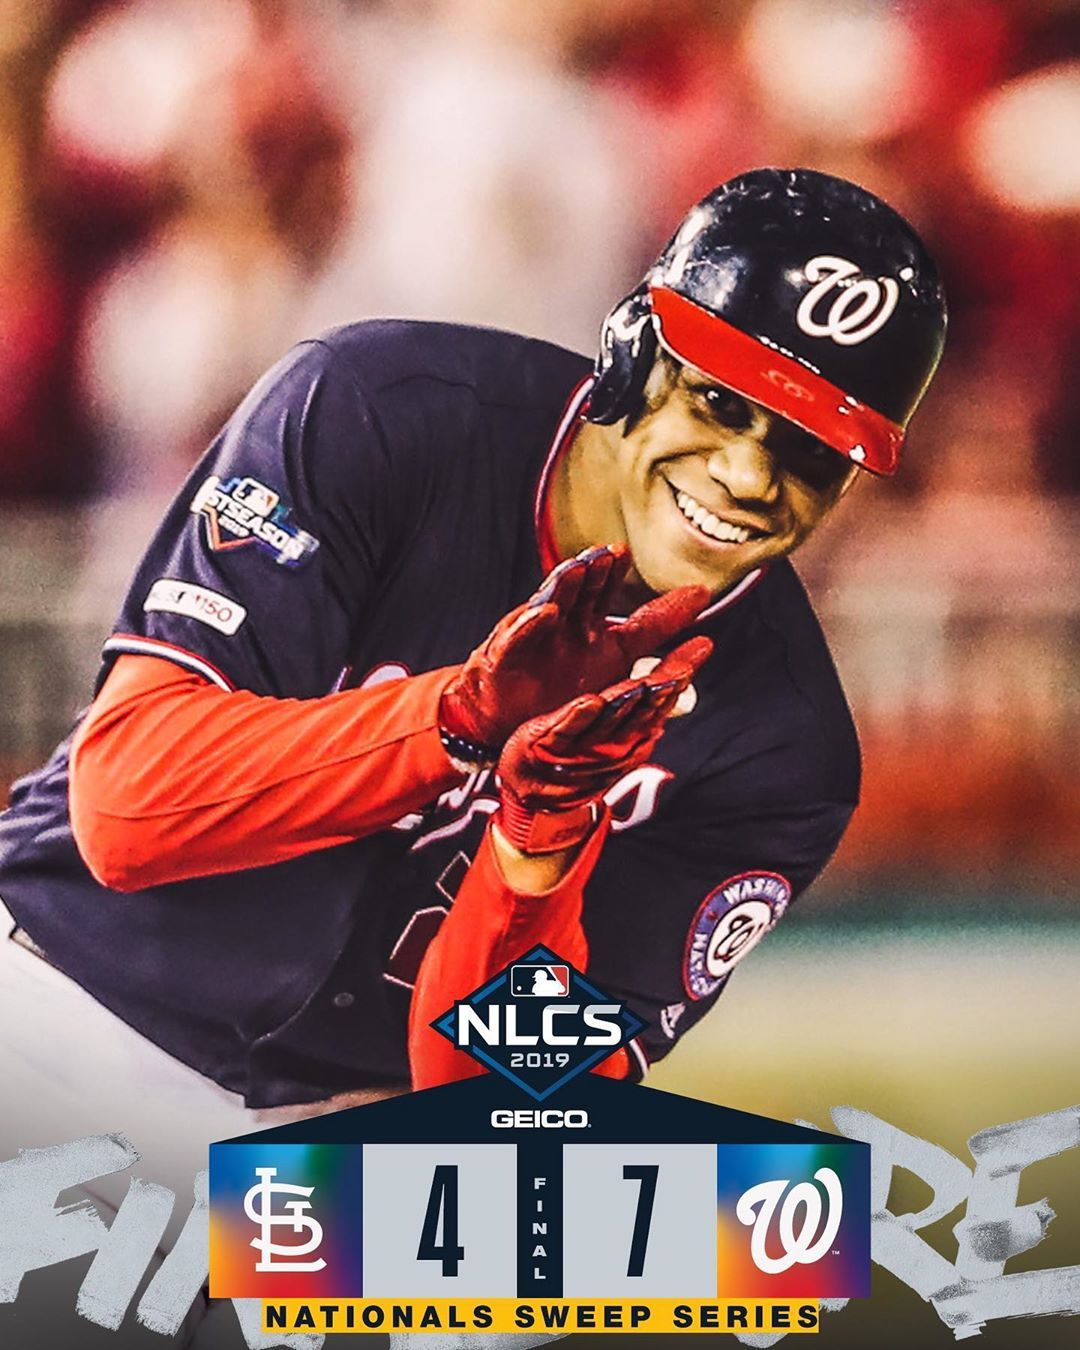 MLB For the first time in franchise history, the